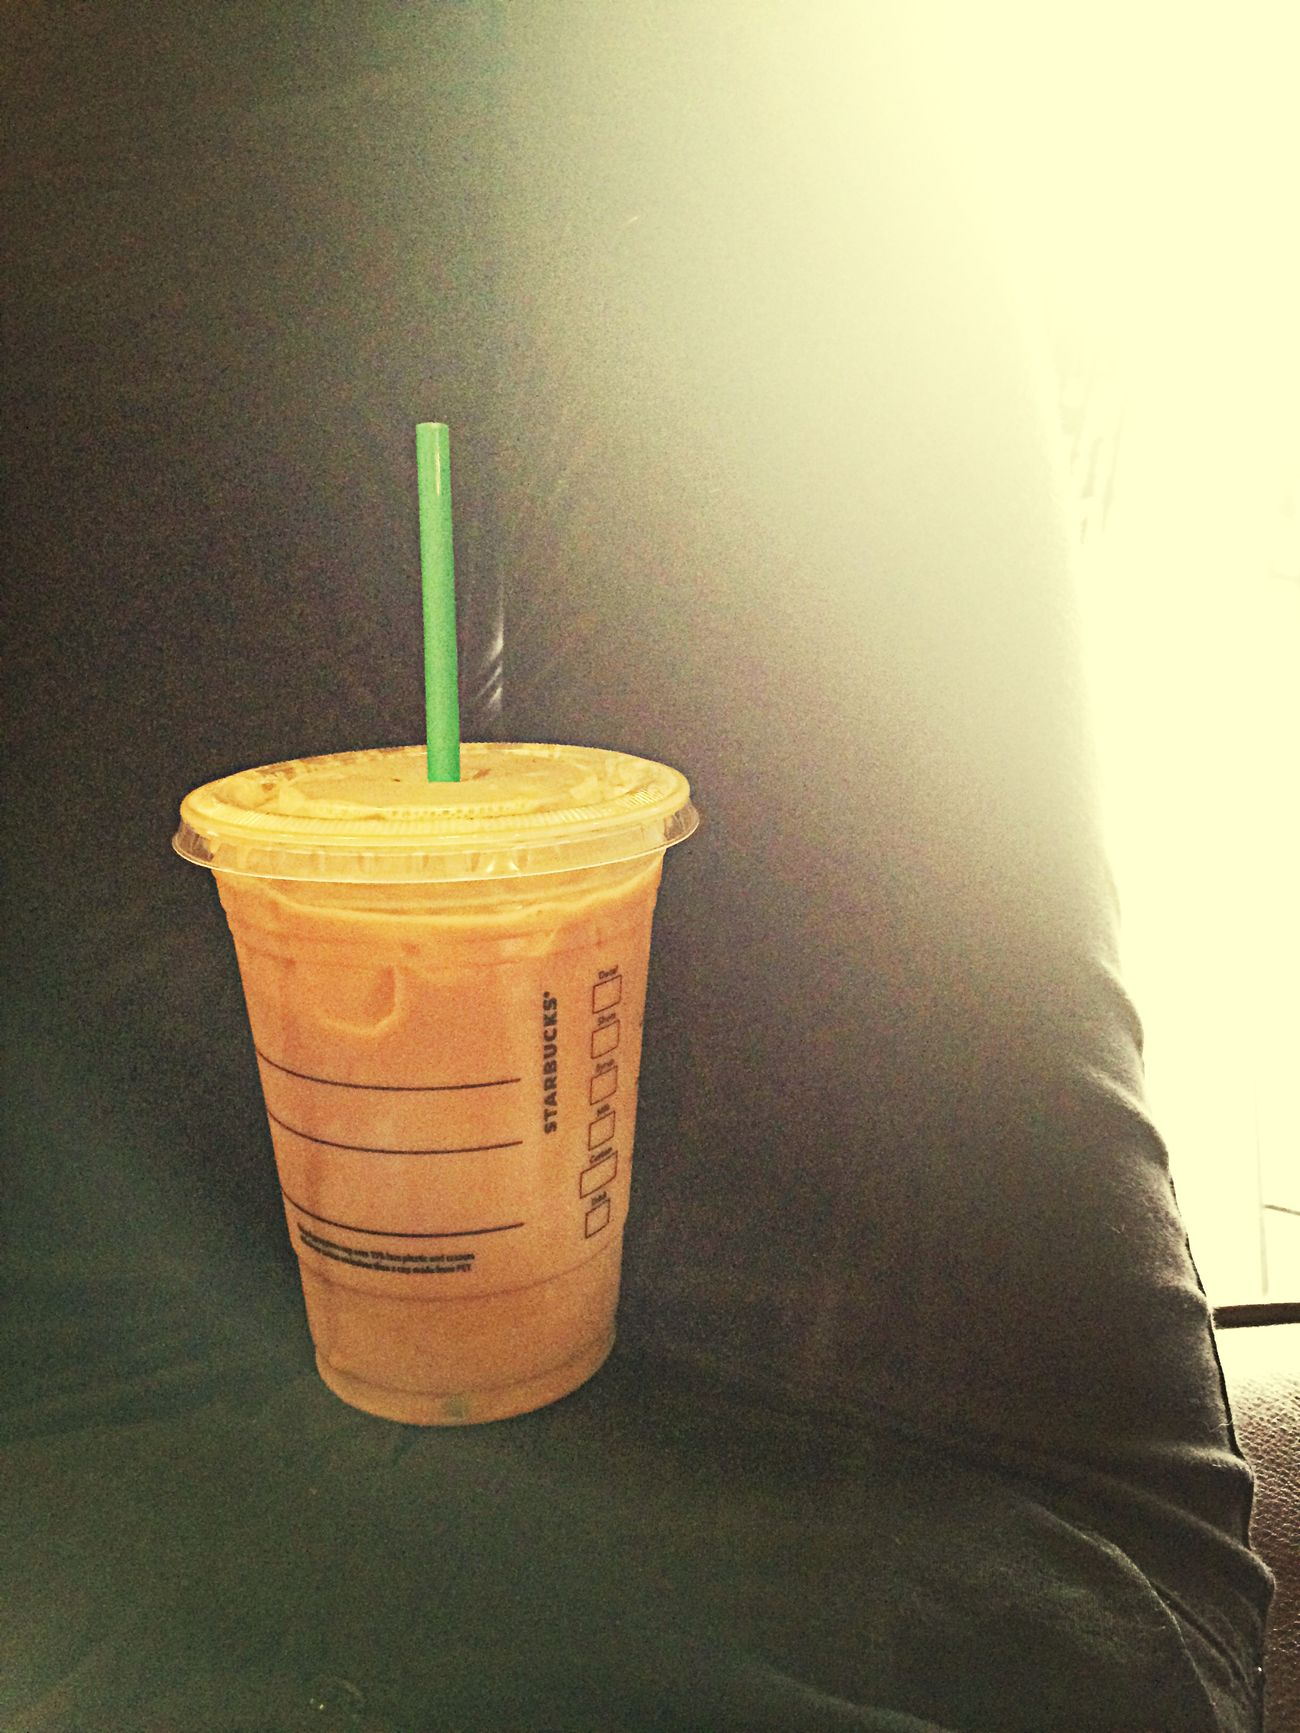 Time to wake up. Starbucks Iced Coffee Good Morning